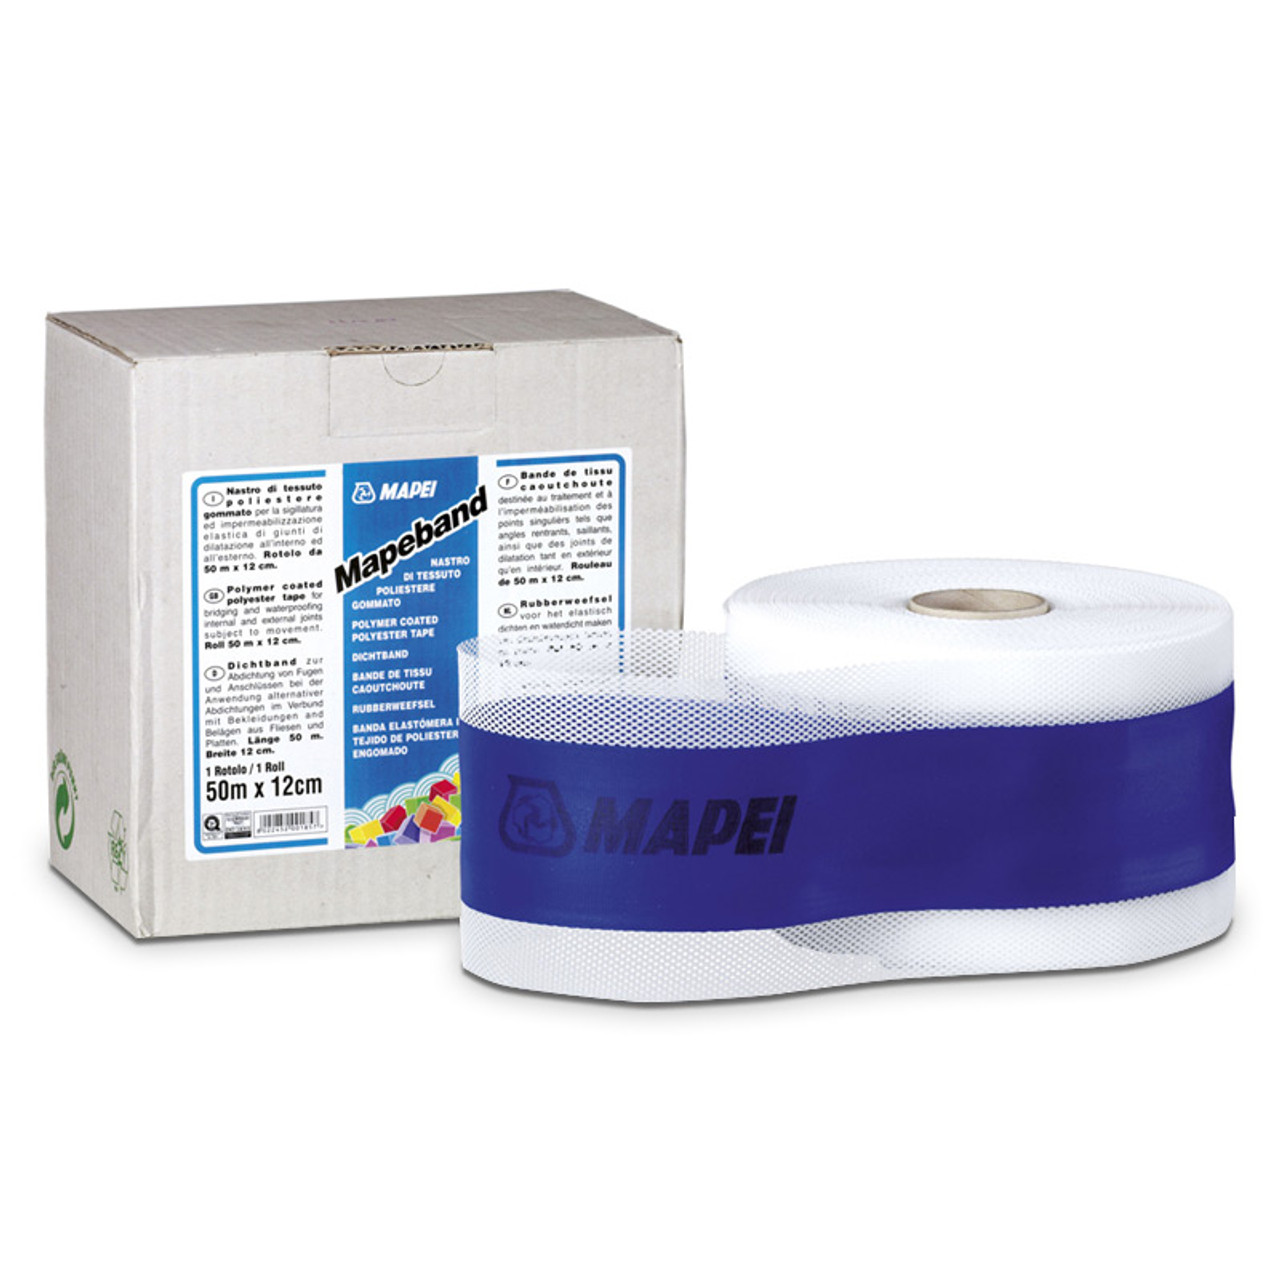 Mapei Mapeband Sealing Tape for Wet rooms price per metre